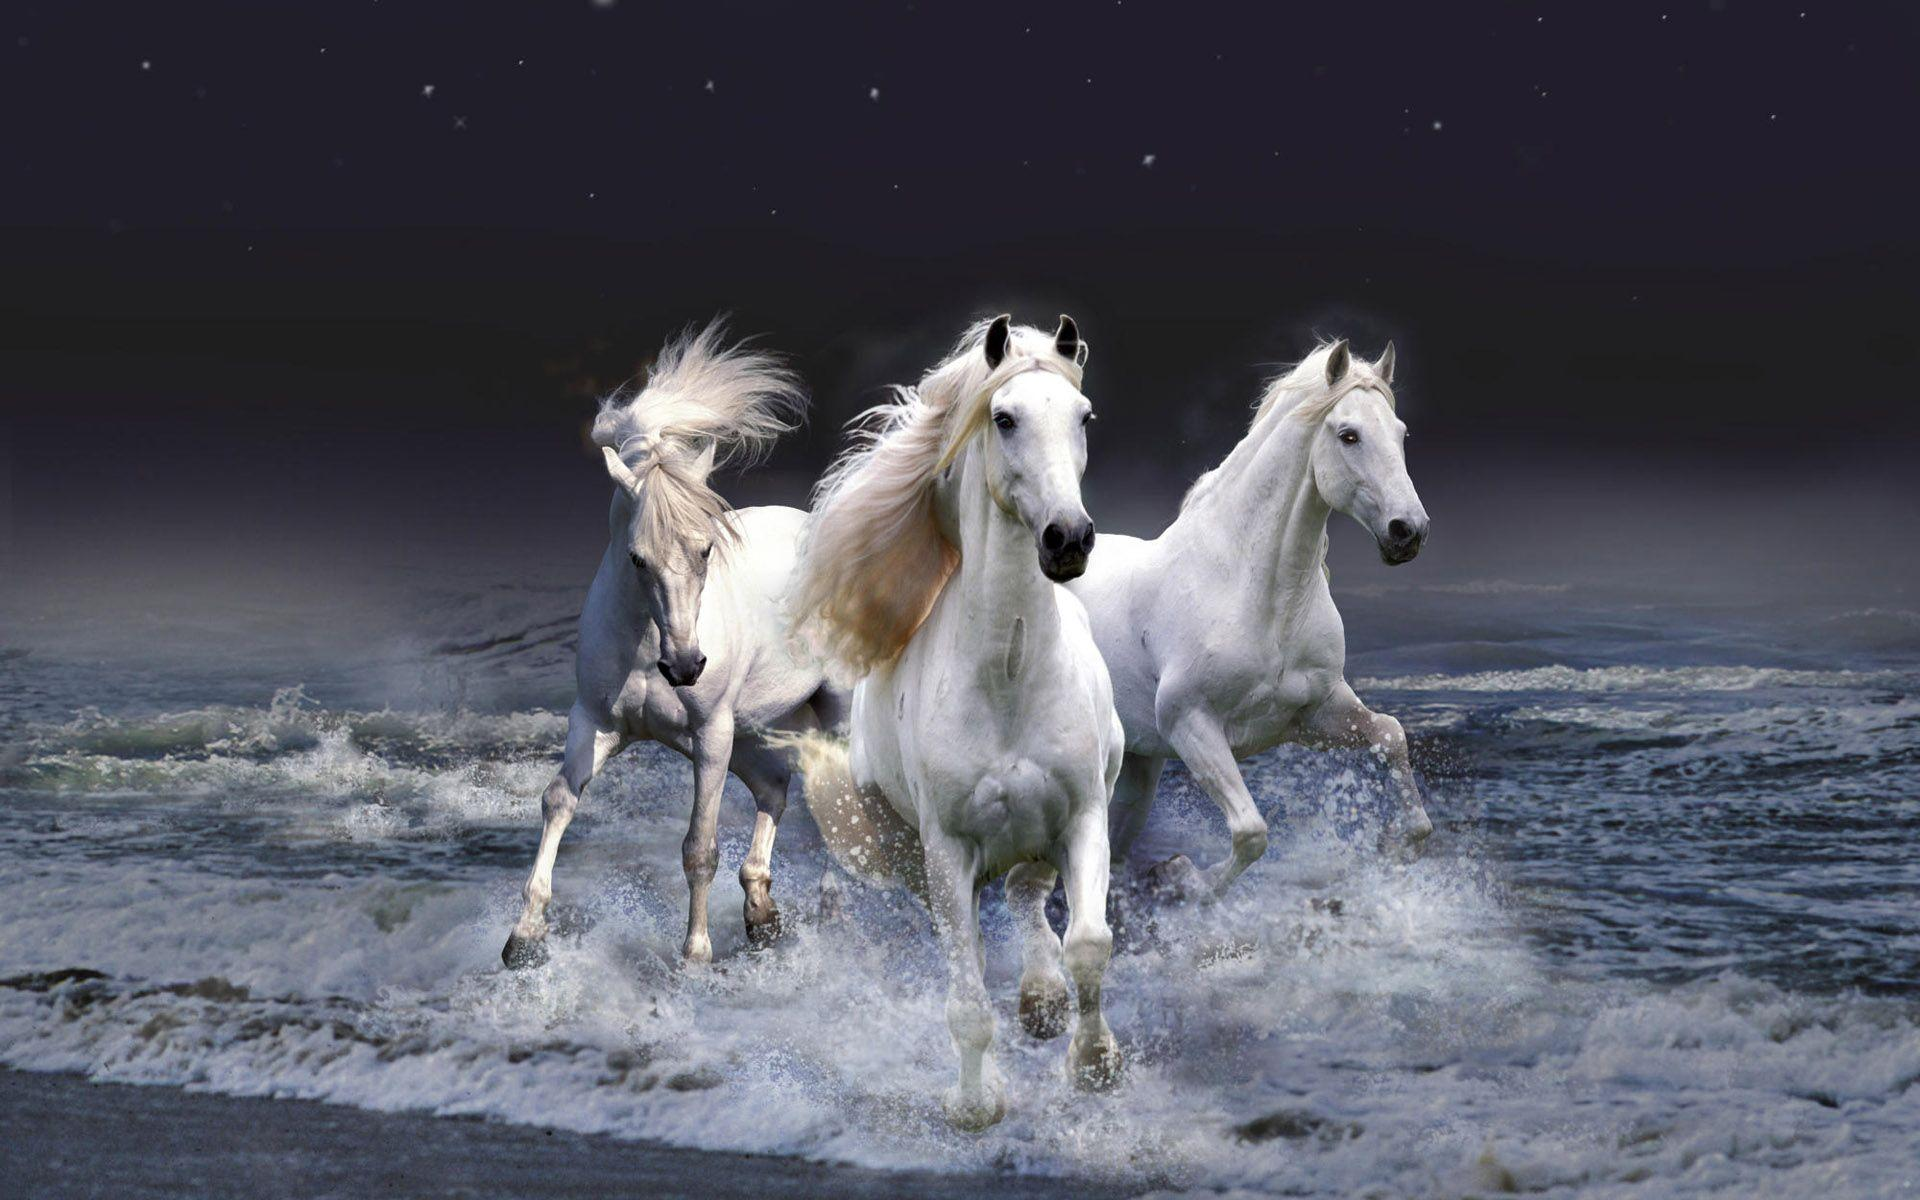 Desktop Wallpapers Horses Wallpaper Cave